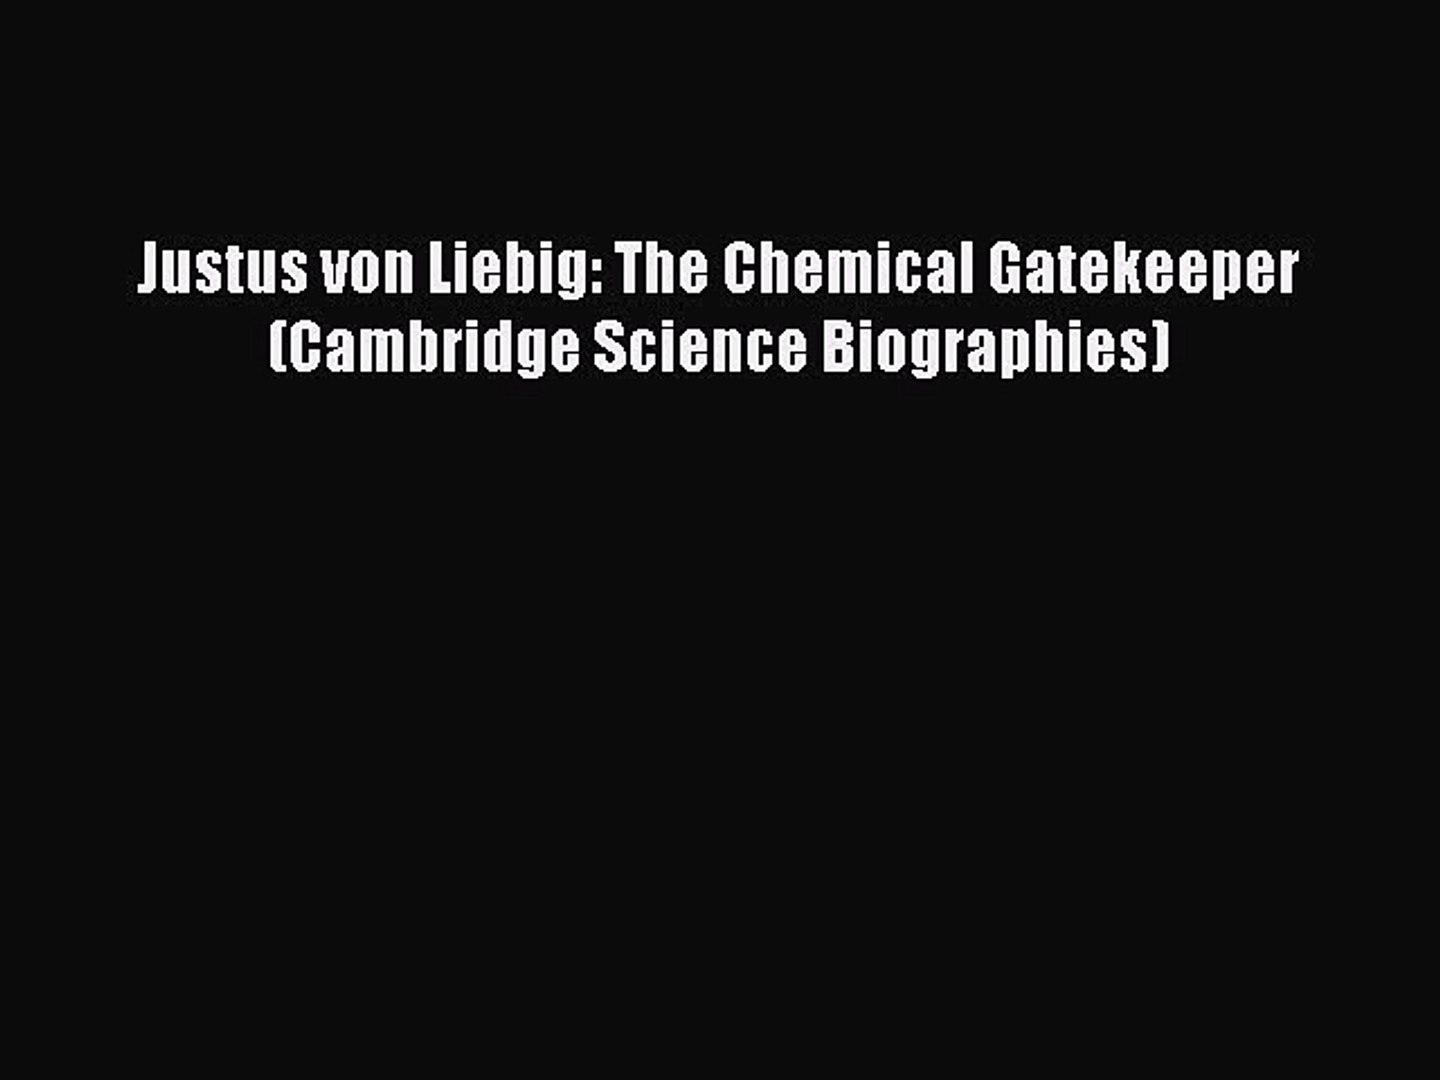 Download Justus von Liebig: The Chemical Gatekeeper (Cambridge Science Biographies) Ebook Online